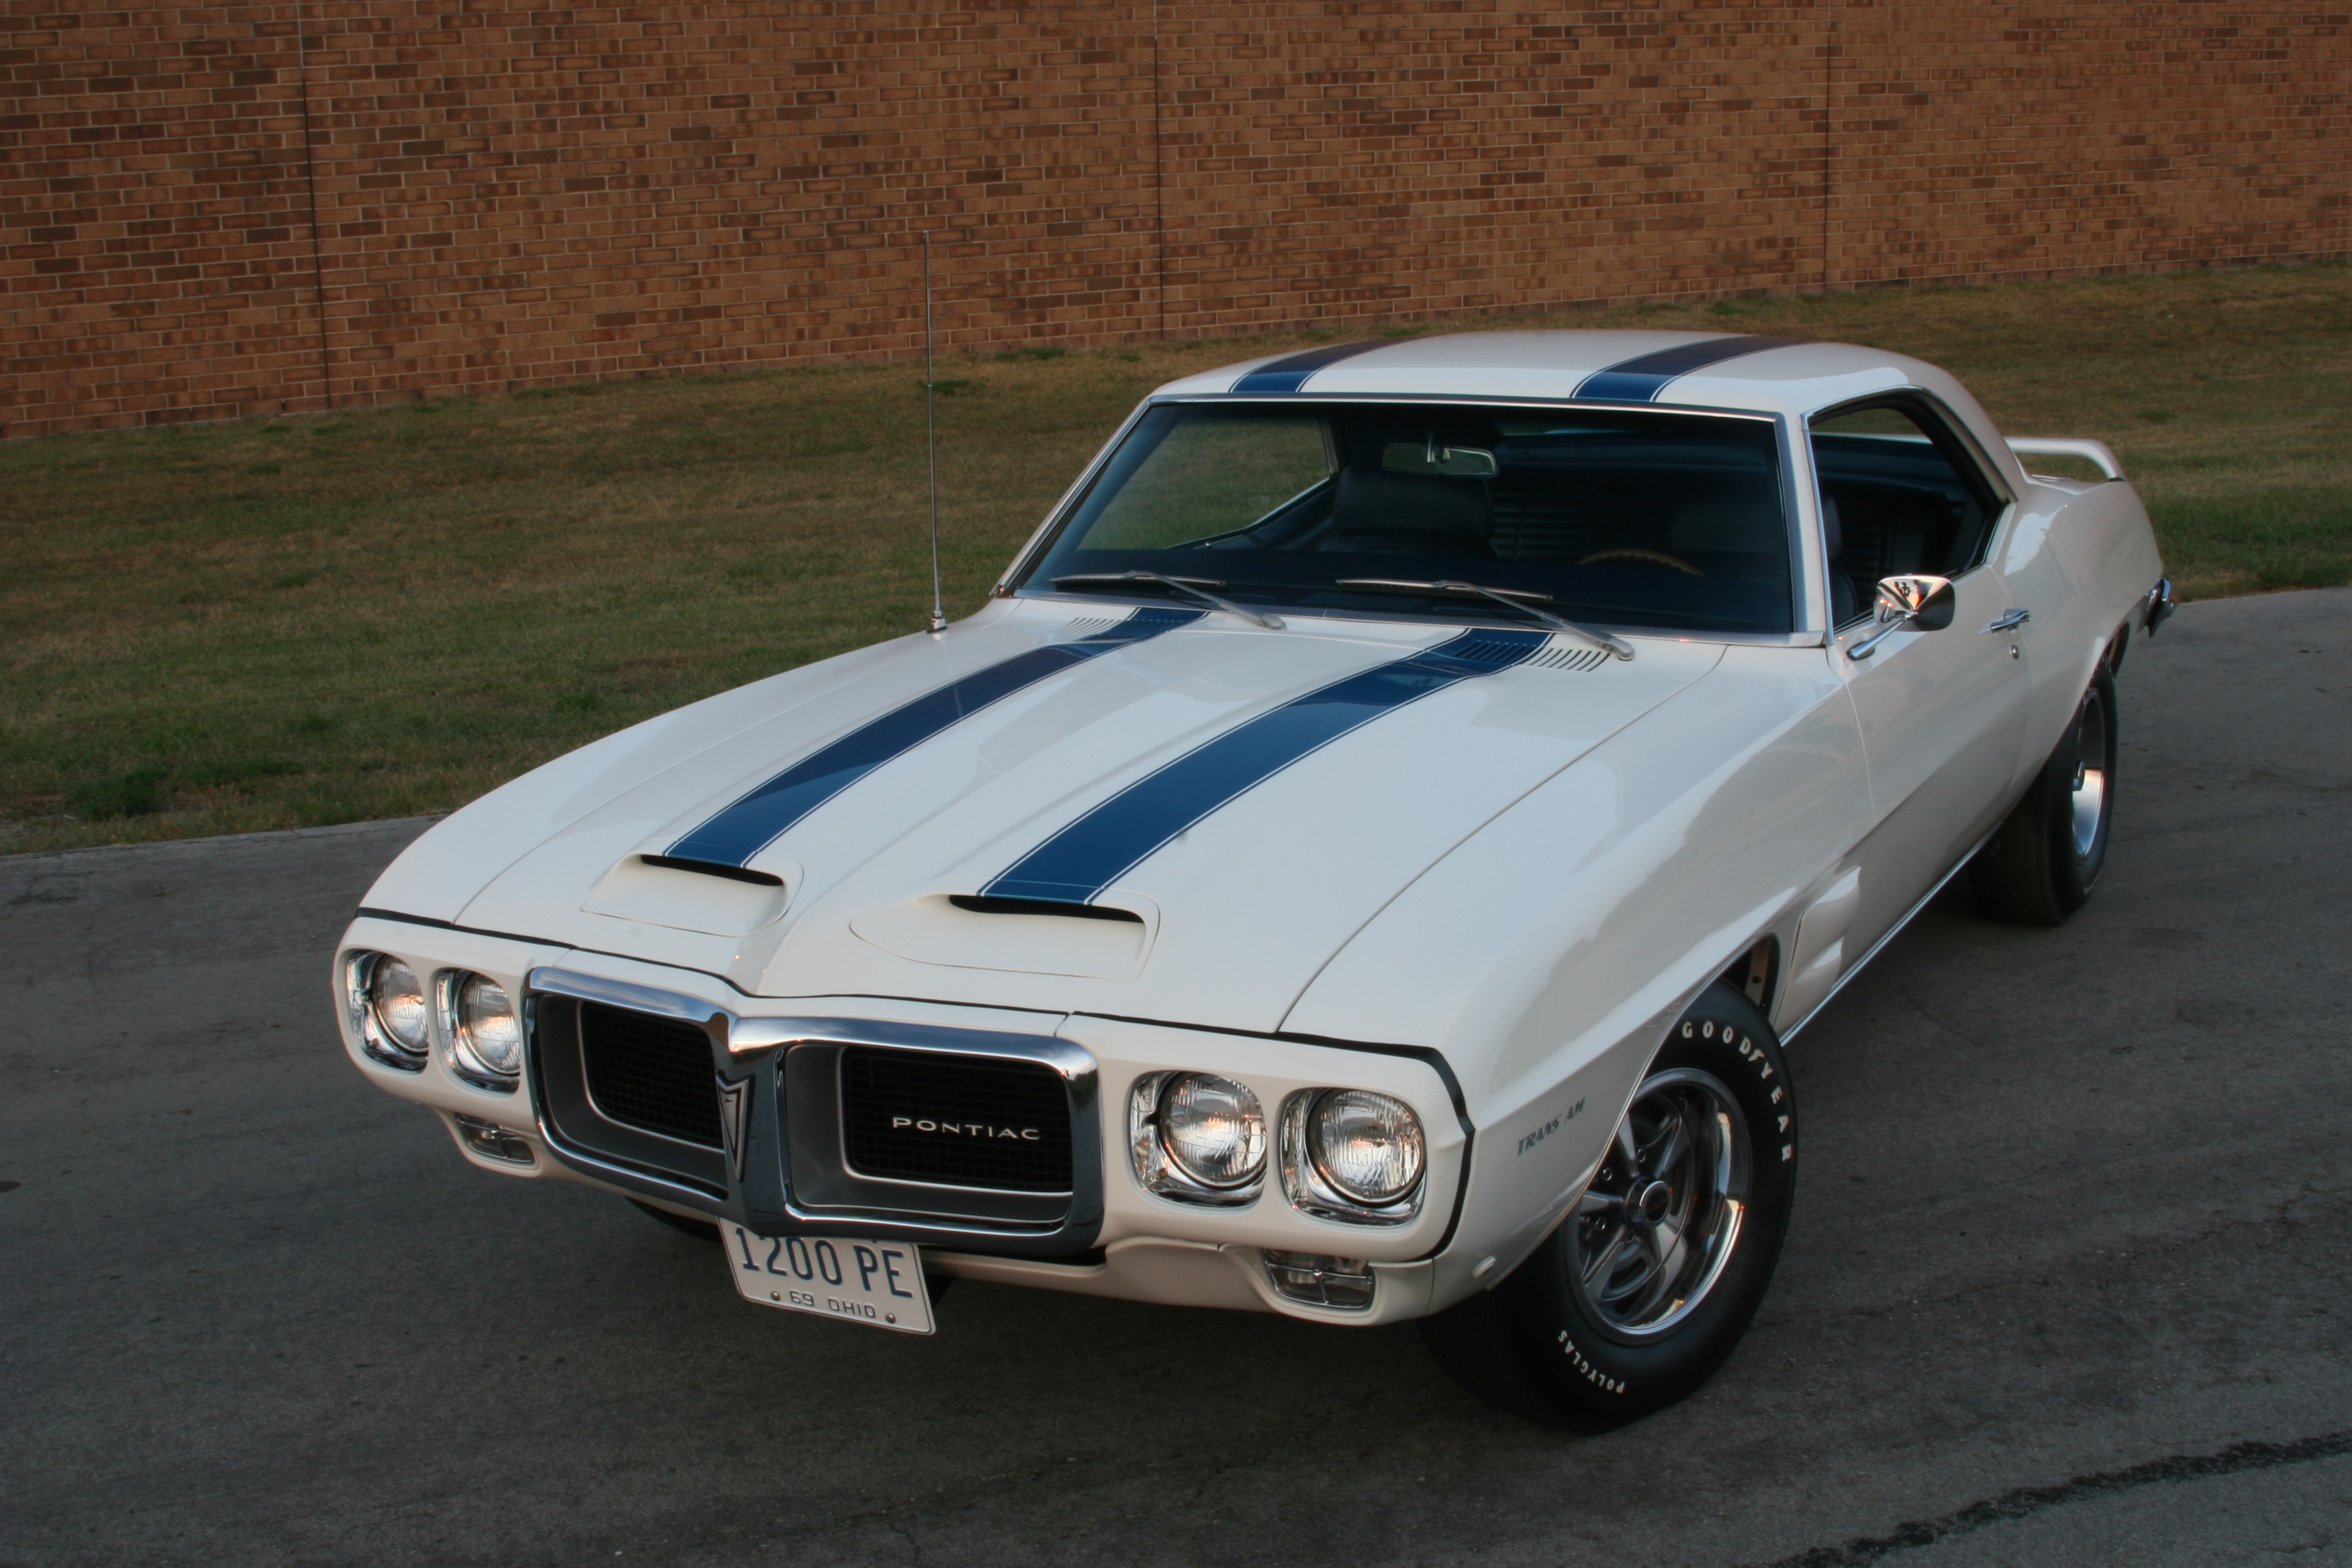 3dtuning Of Pontiac Trans Am Coupe 1969 3dtuning Com